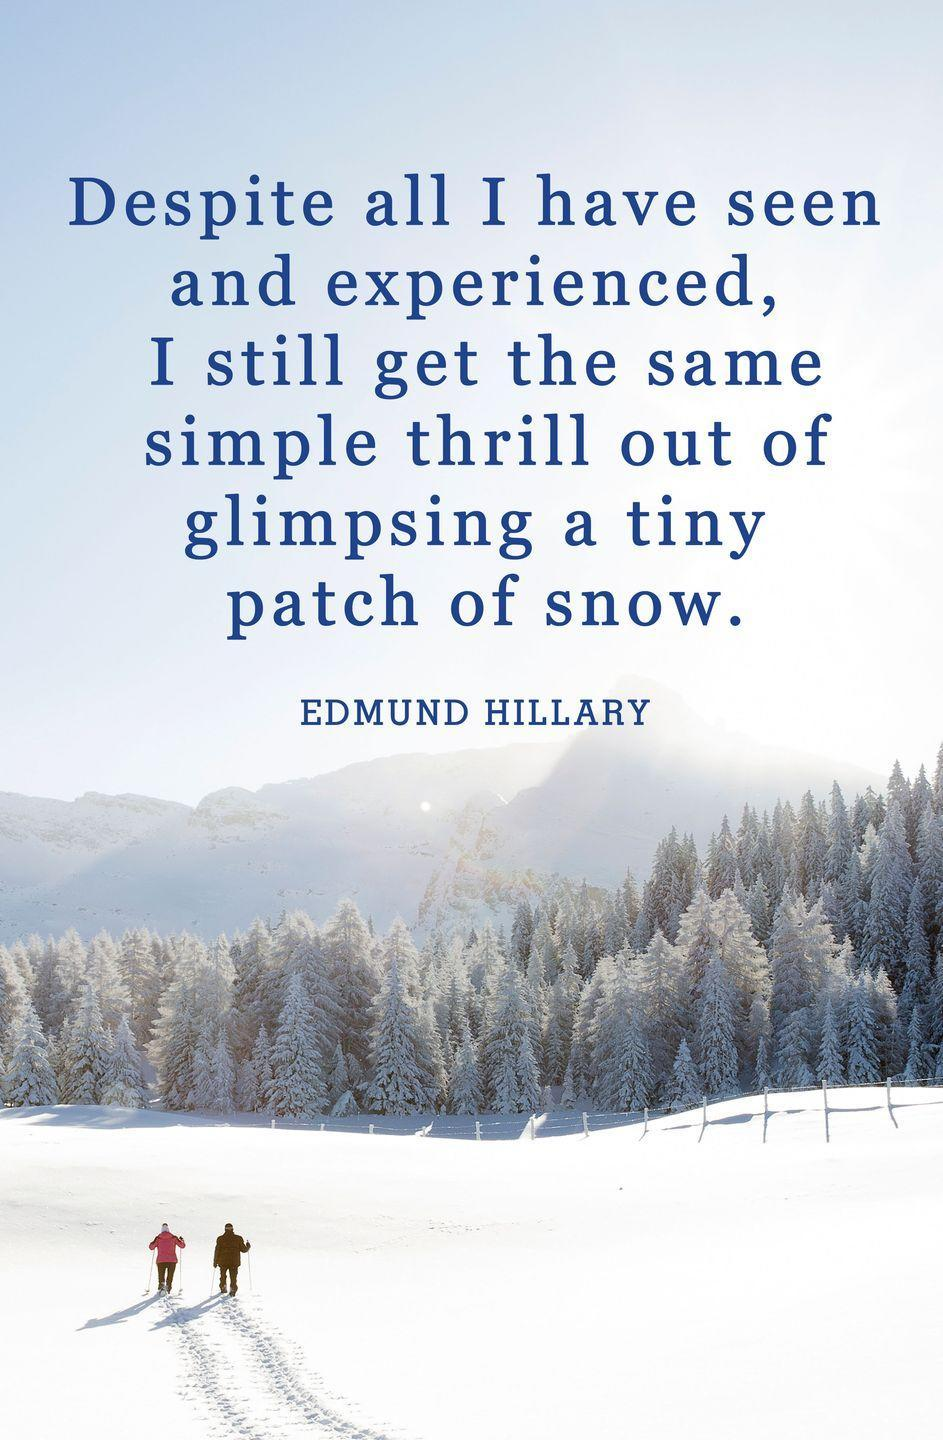 "<p>""Despite all I have seen and experienced, I still get the same simple thrill out of glimpsing a tiny patch of snow.""</p>"